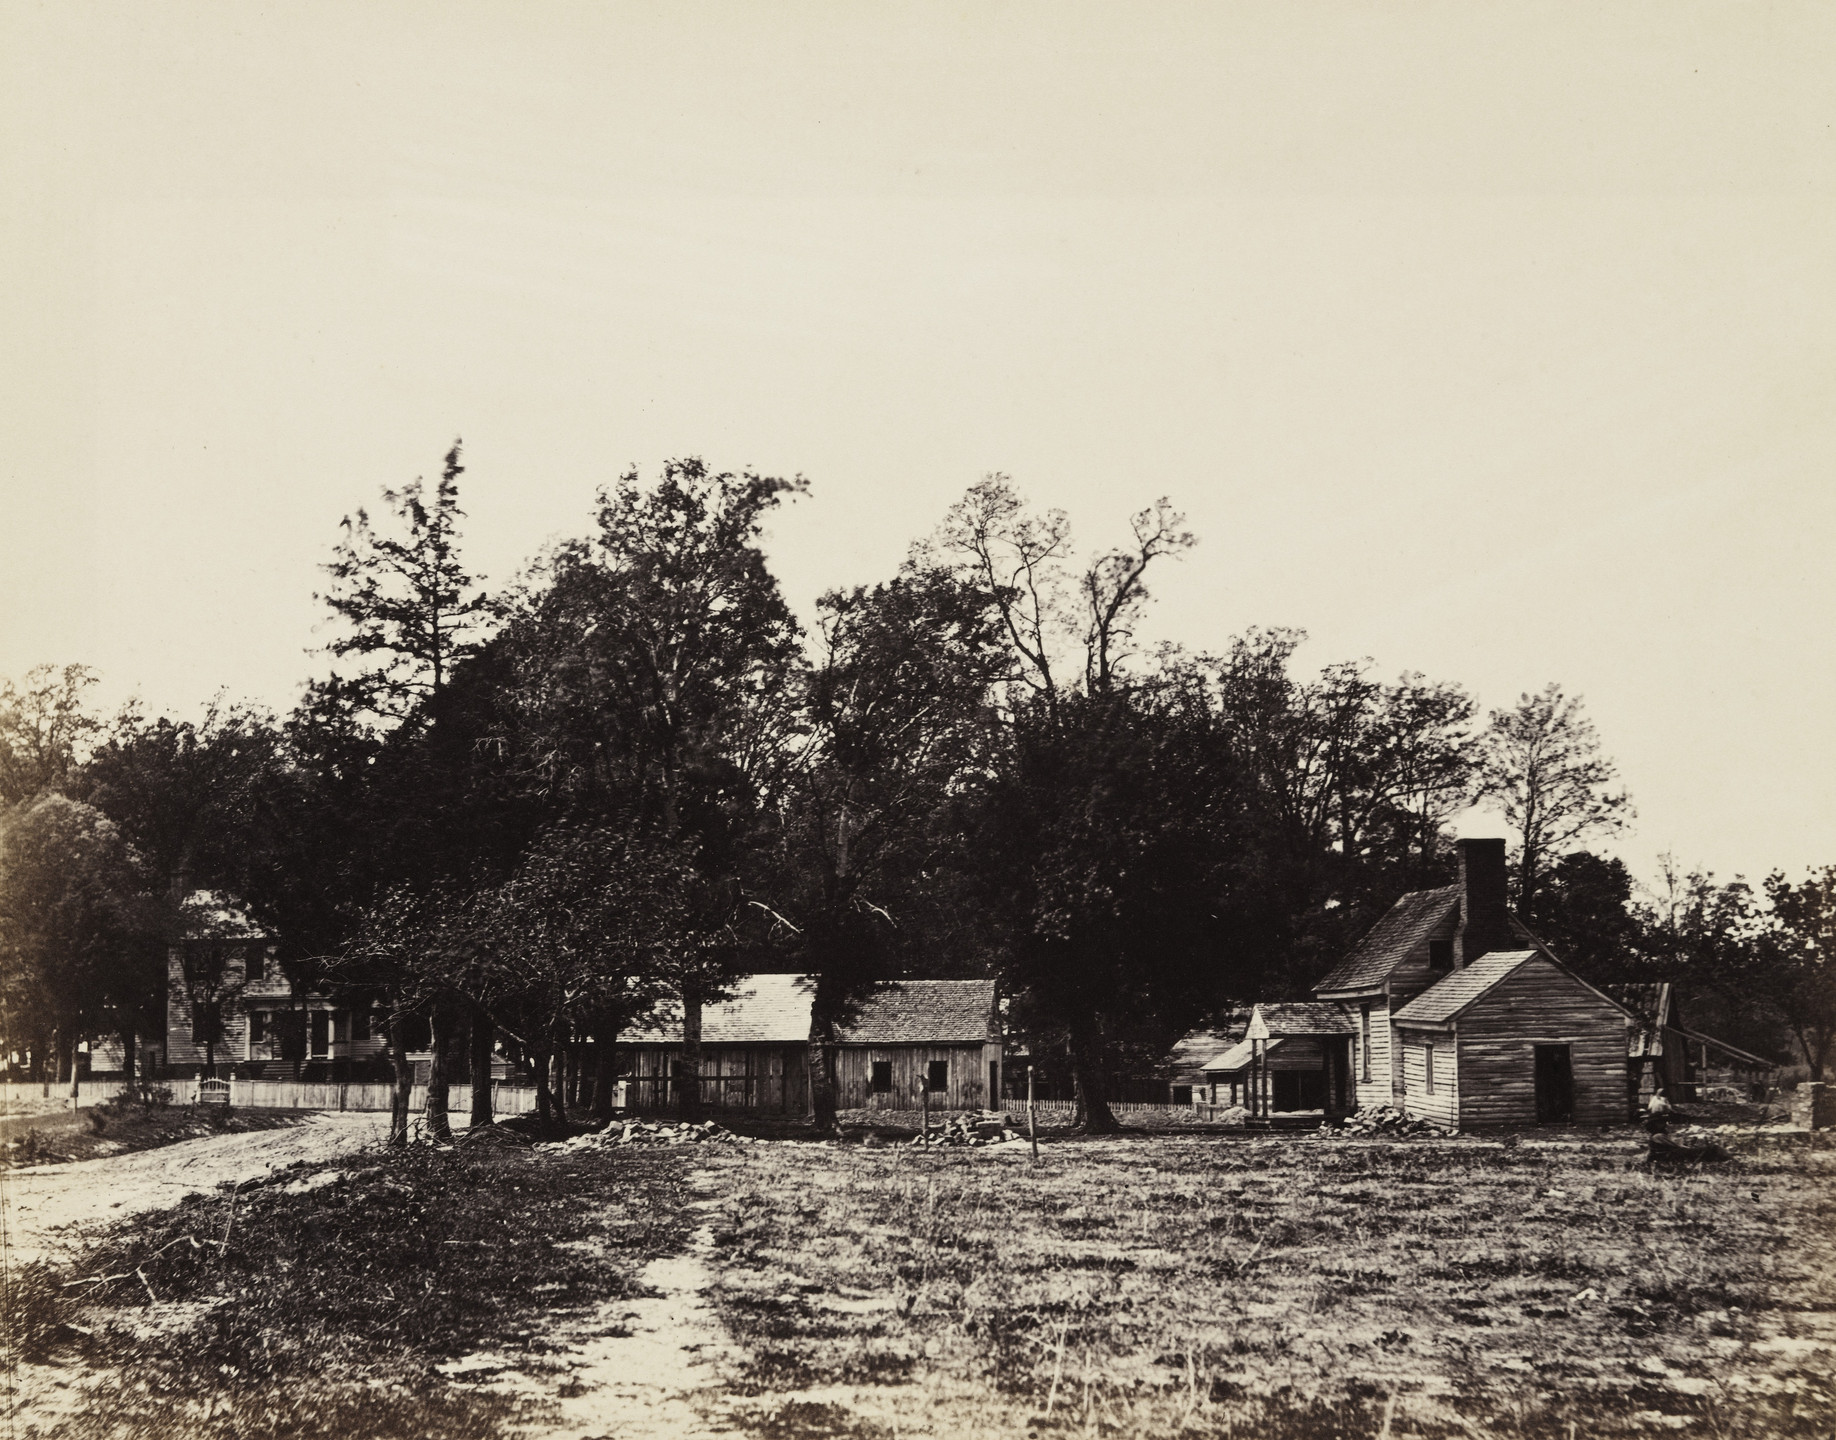 Alexander Gardner. Mechanicsville, Virginia. April, 1865